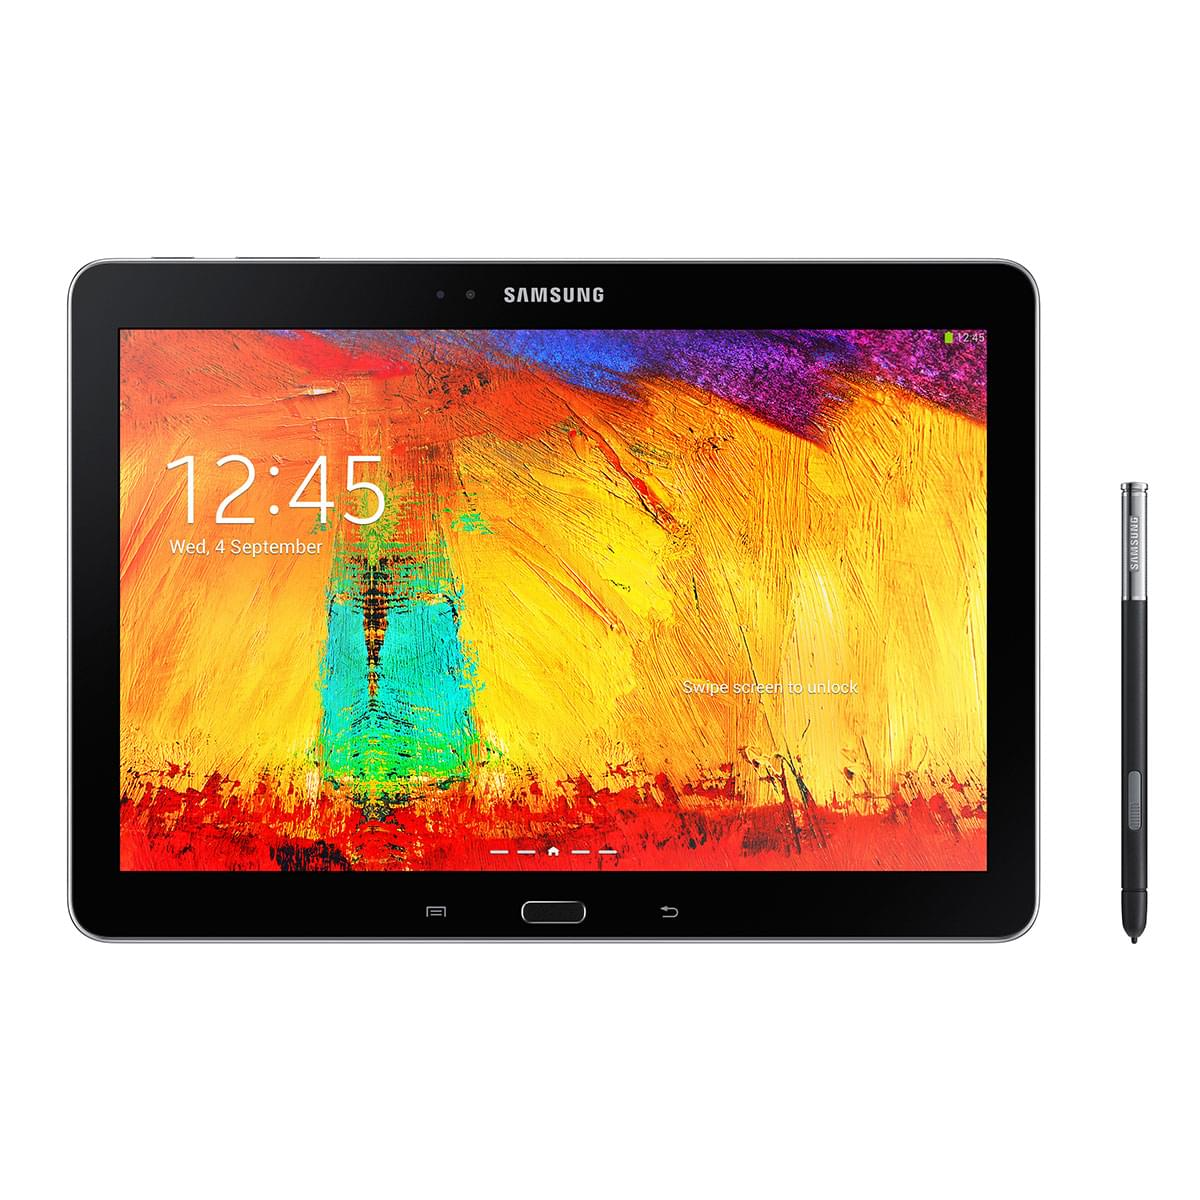 Samsung Galaxy Note 10.1 2014 P6000ZKA - Tablette tactile Samsung - 0